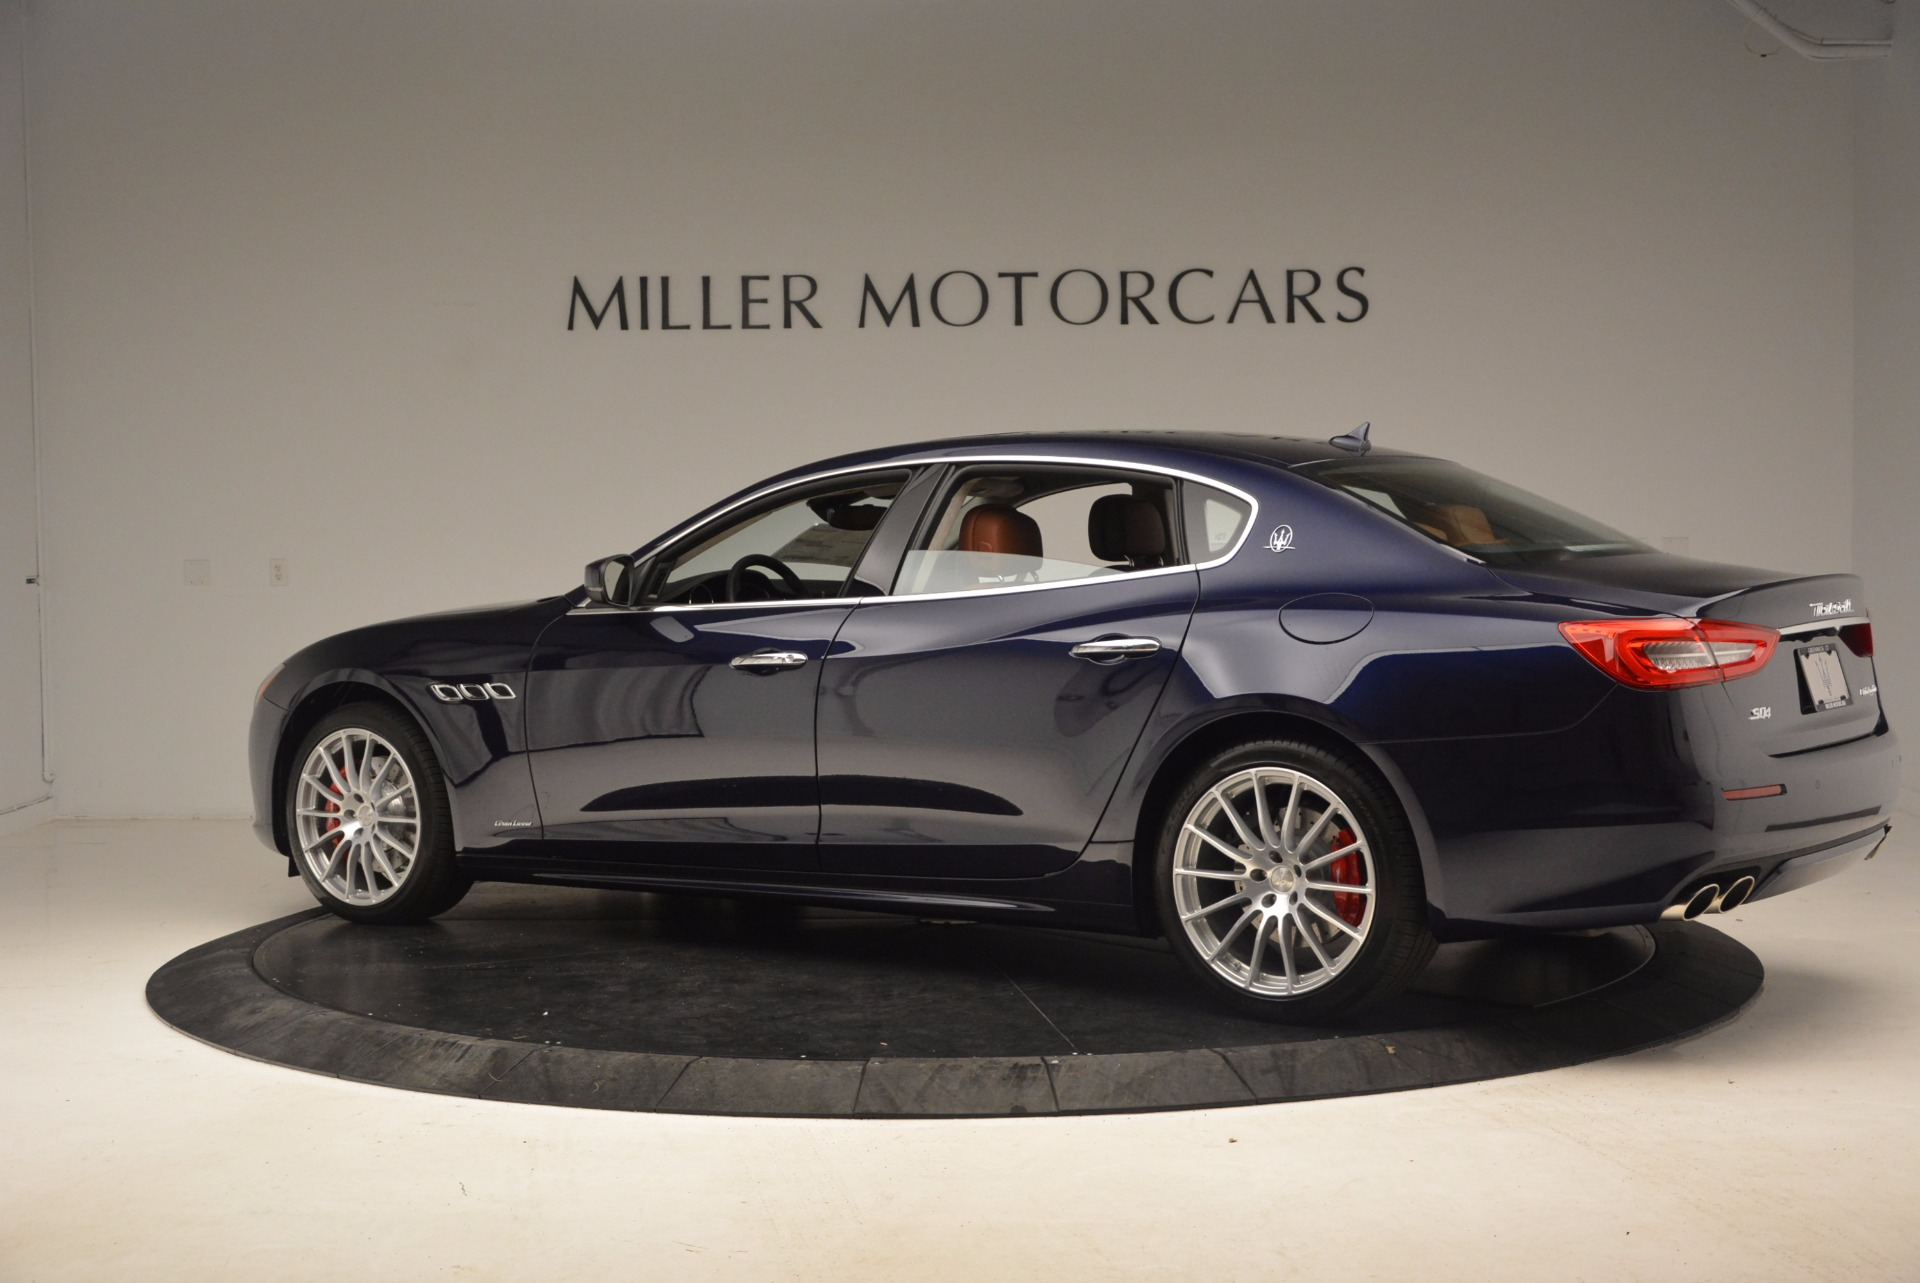 Used 2018 Maserati Quattroporte S Q4 GranLusso For Sale In Greenwich, CT 1572_p4